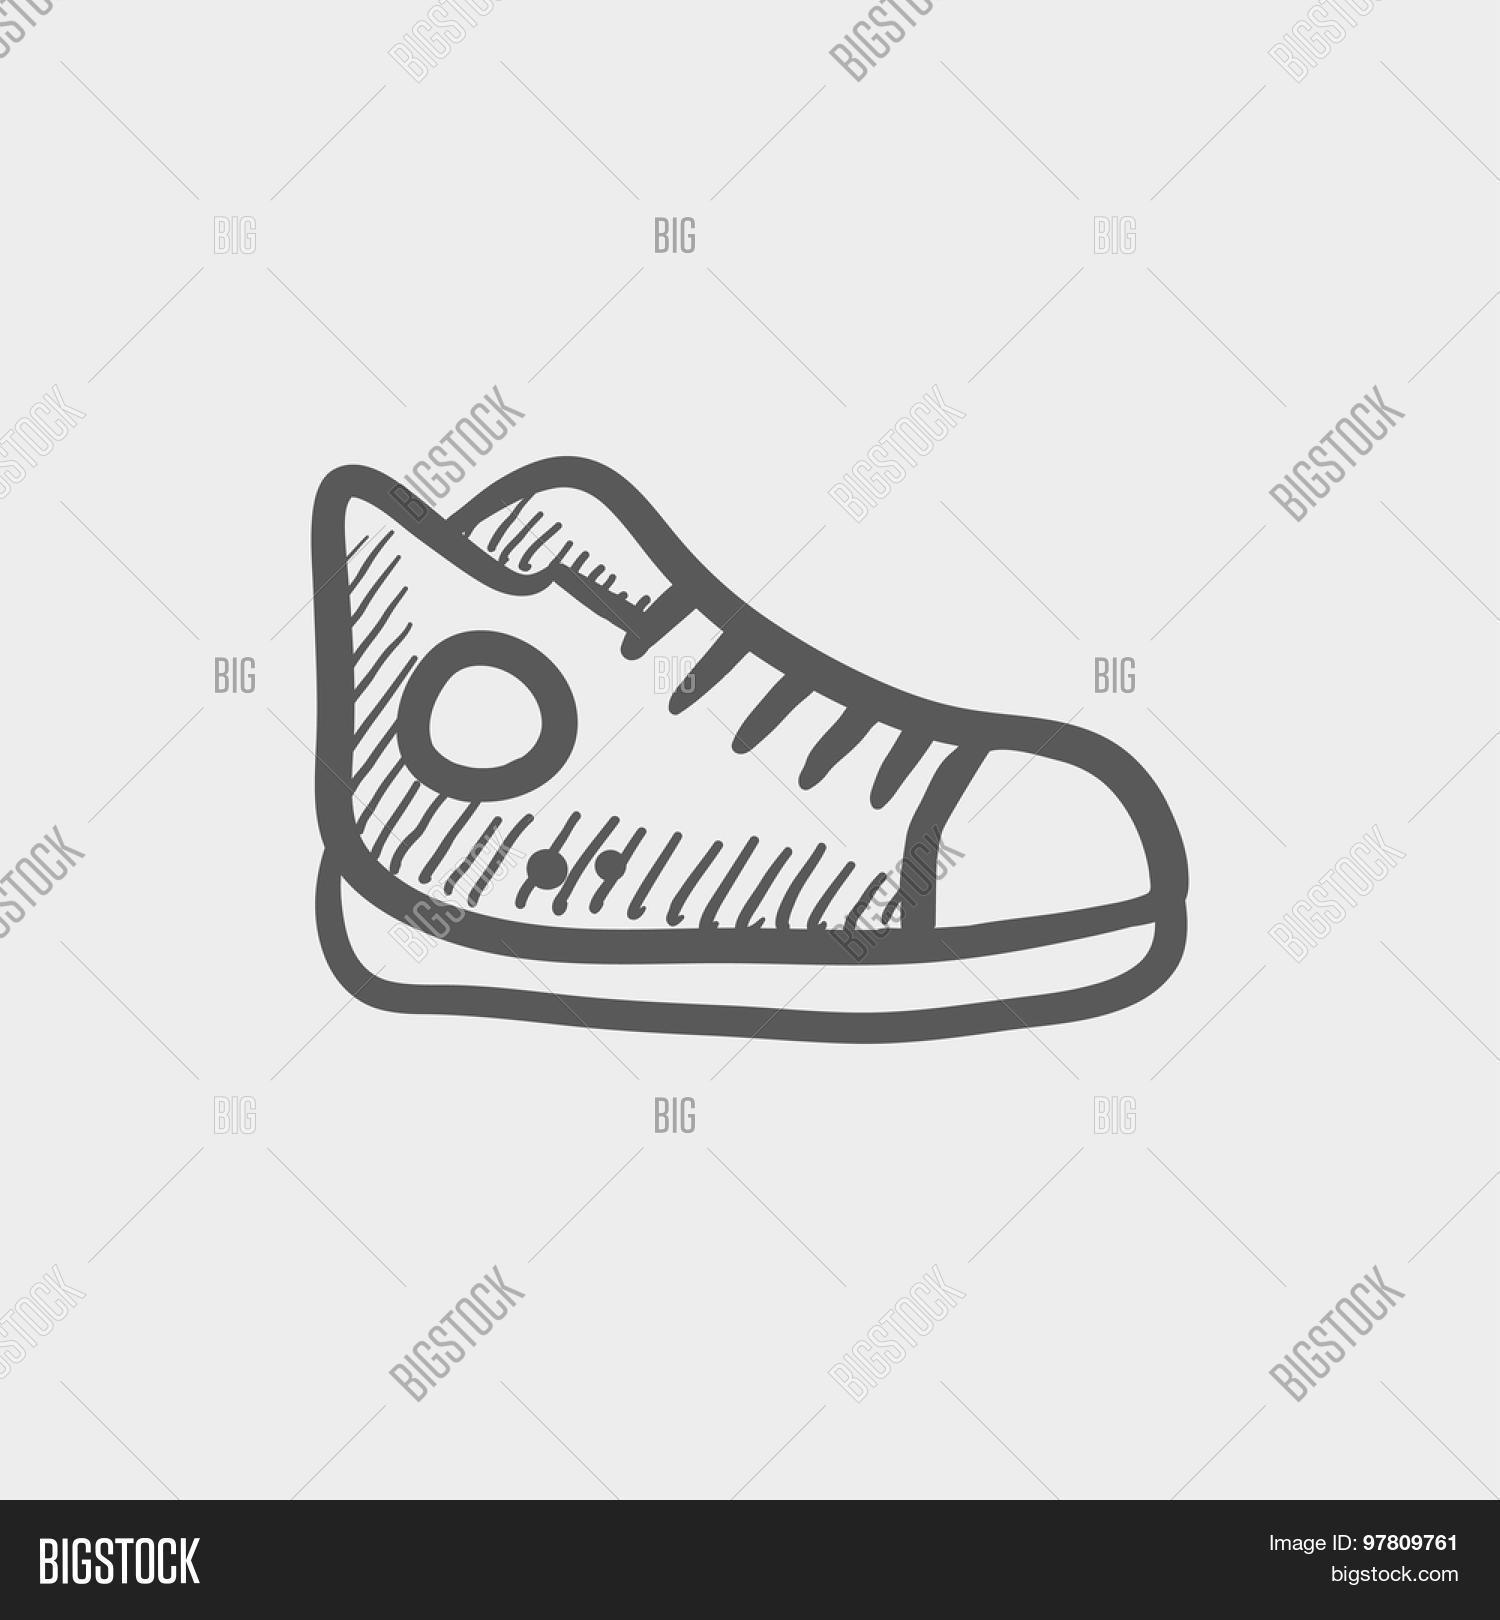 Hi-cut Rubber Shoes Vector & Photo (Free Trial) | Bigstock